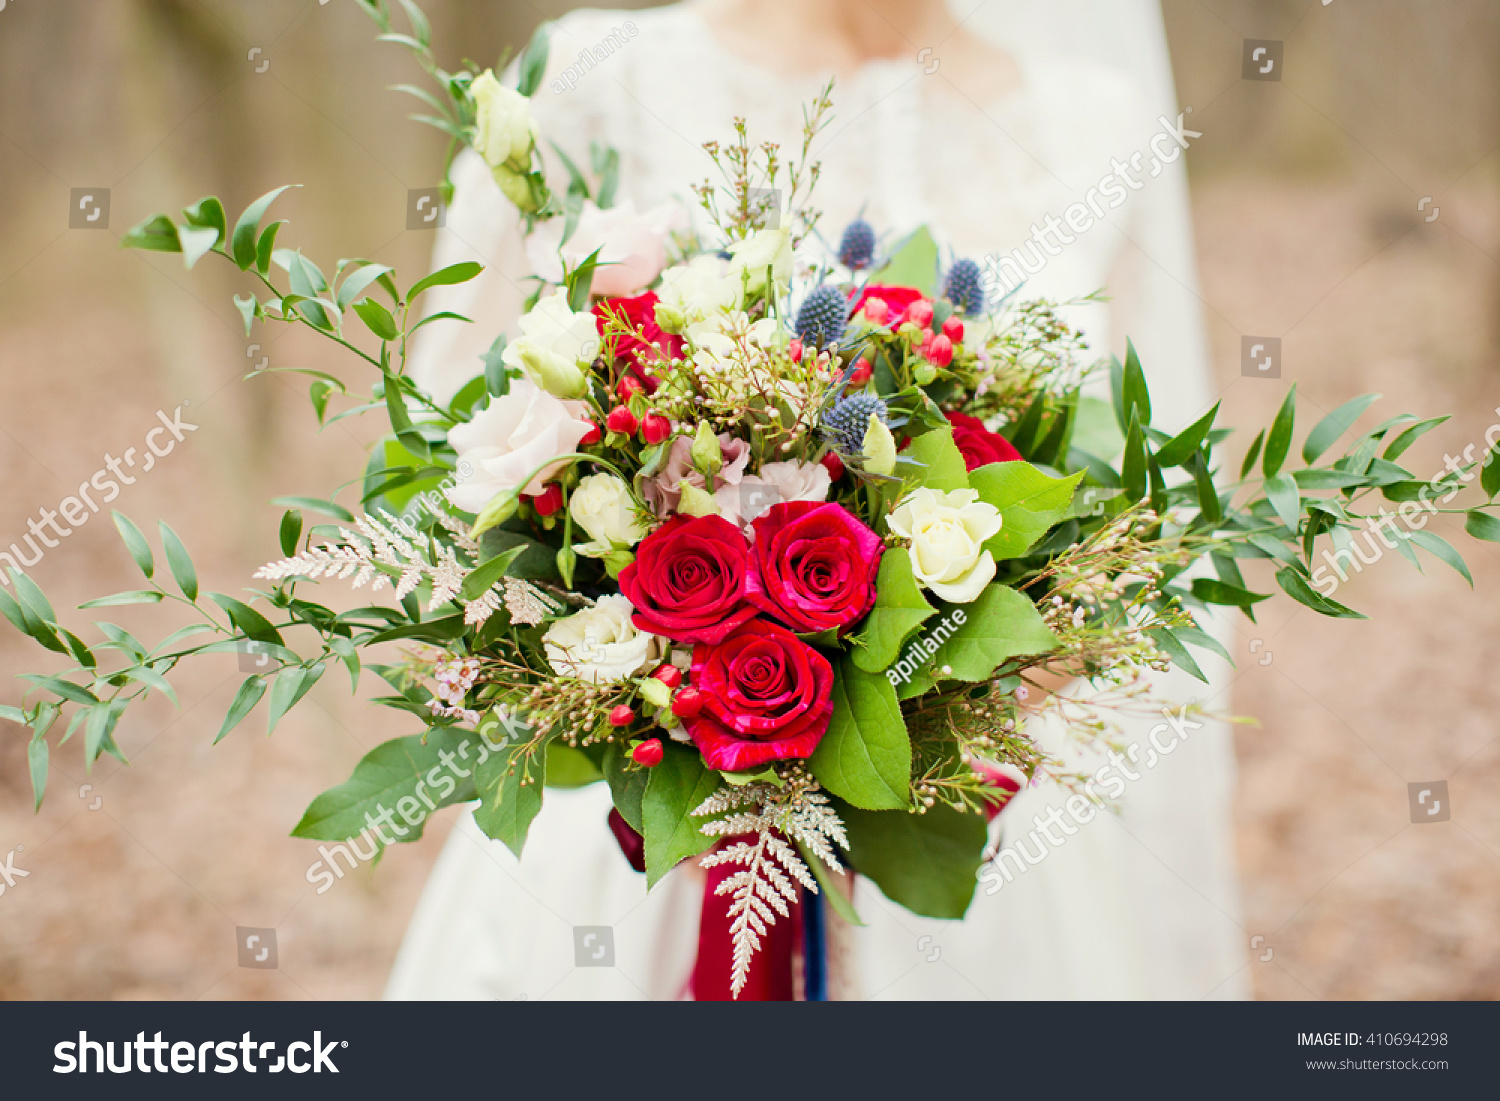 Wedding boho bouquet red white blue stock photo royalty free wedding boho bouquet with red white and blue flowers izmirmasajfo